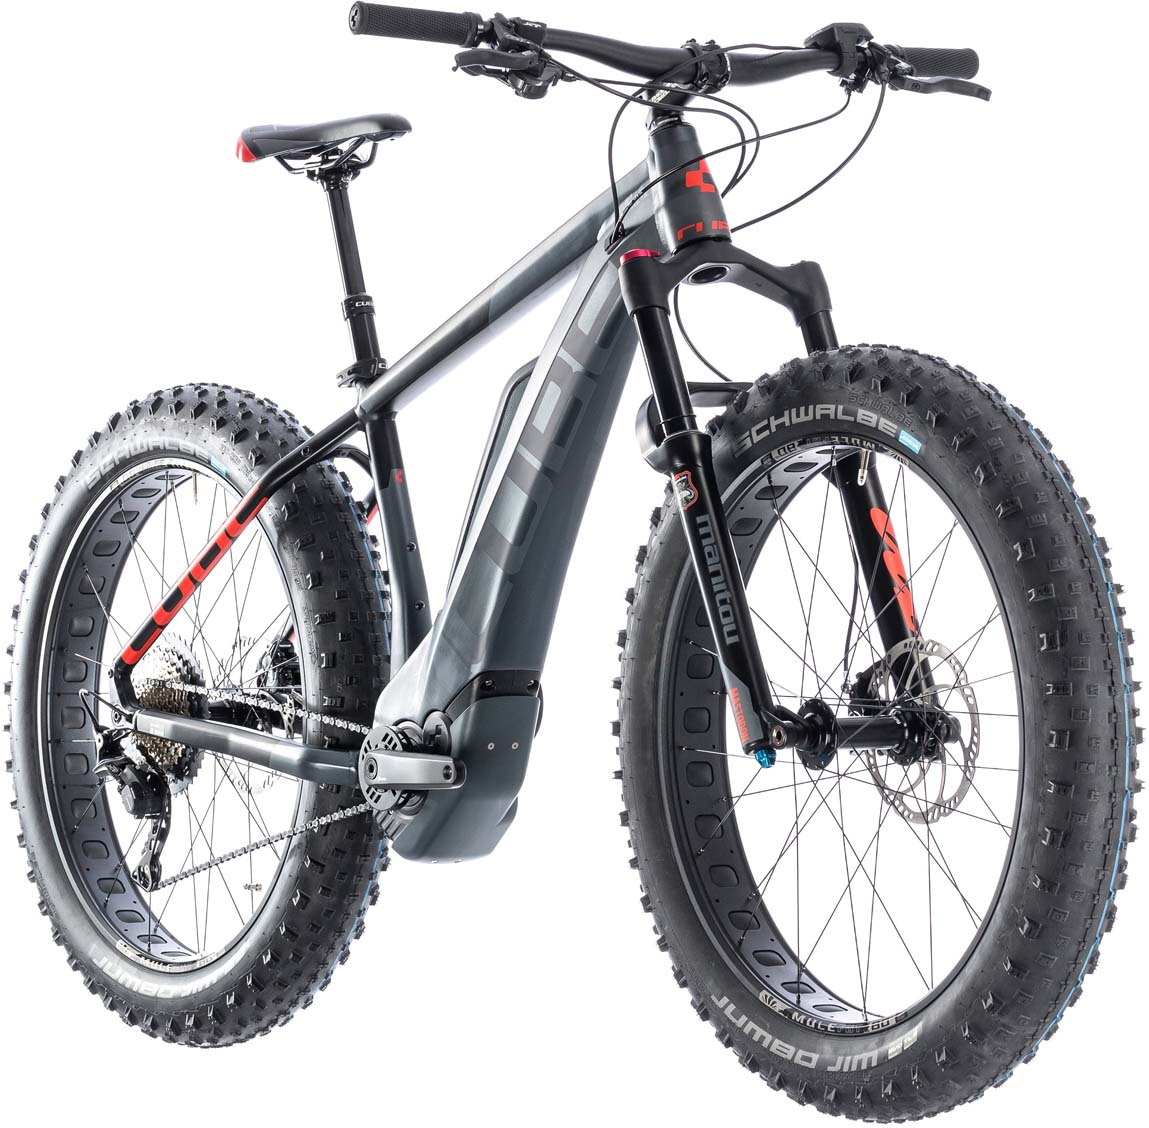 Mountainbike 29 Inch E-bike Mountainbike Fatbikes | Mountainbikes (hardtail